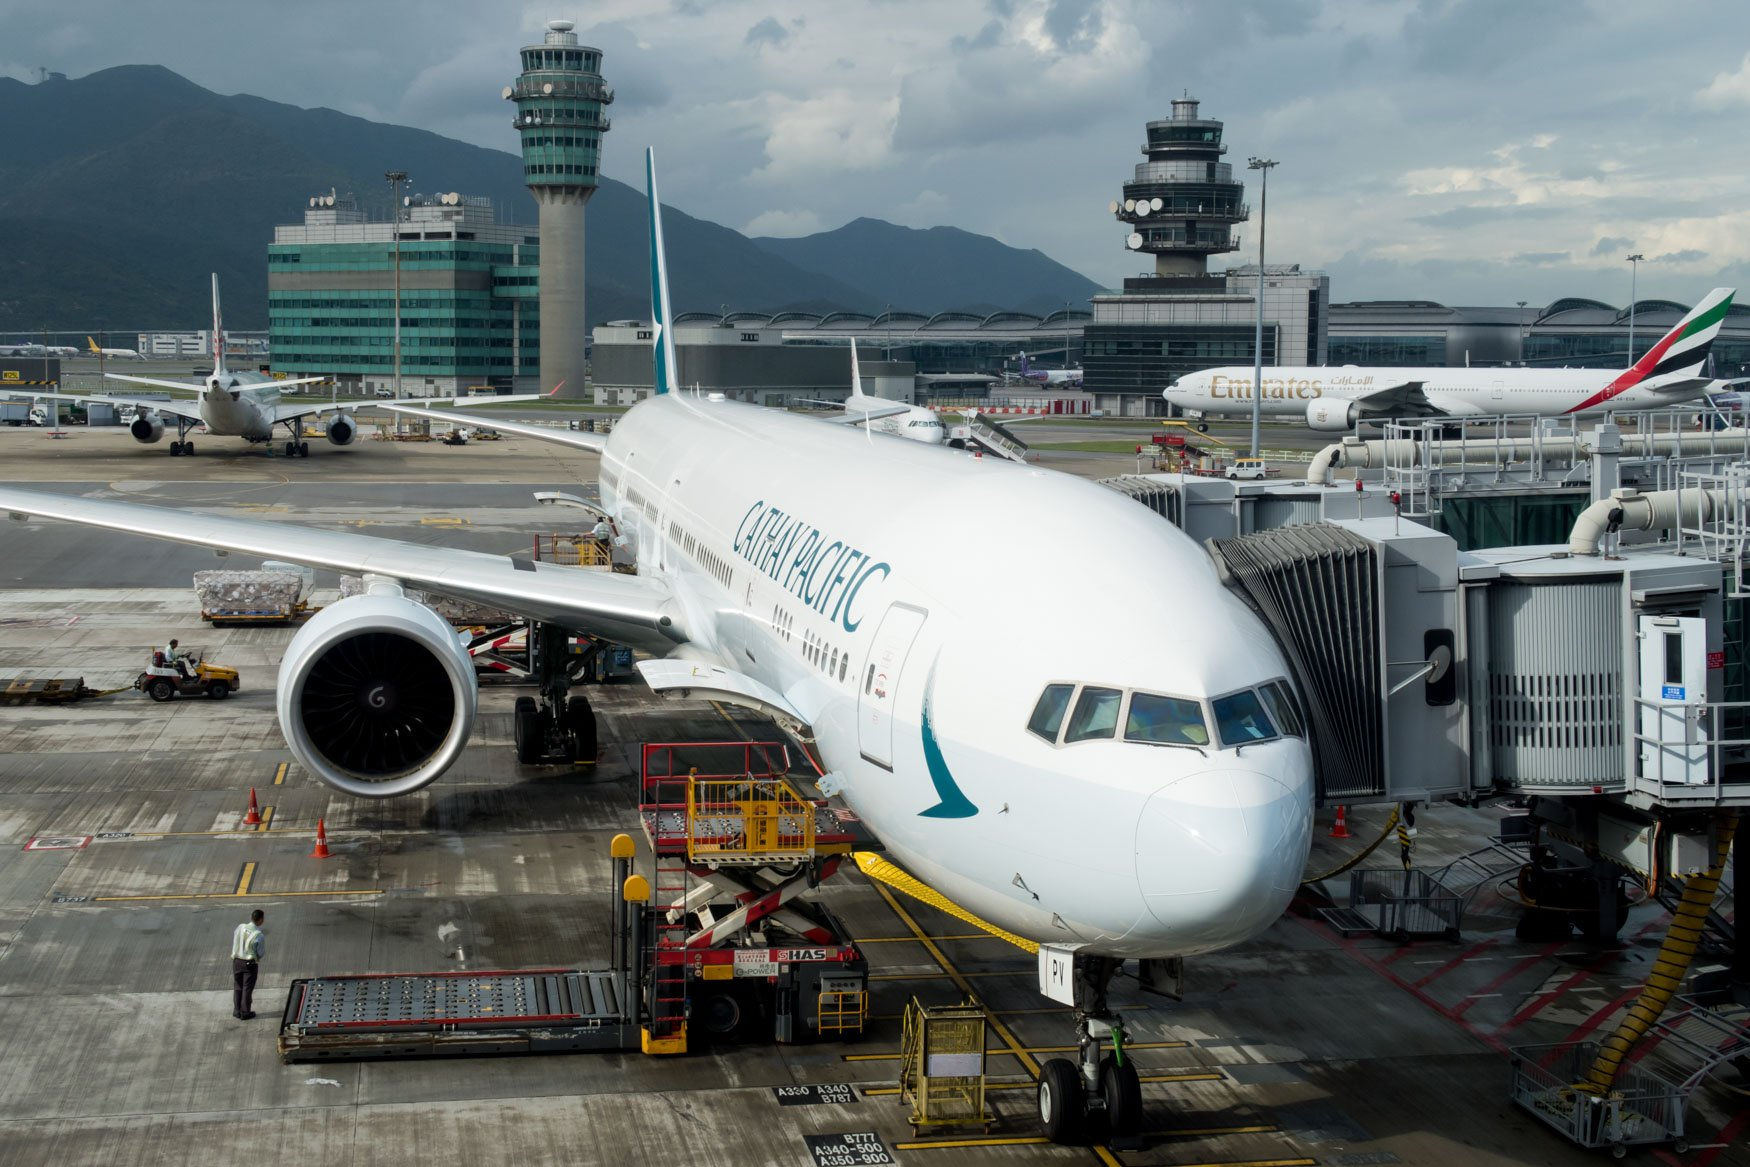 Cathay Pacific Boeing 777-300ER